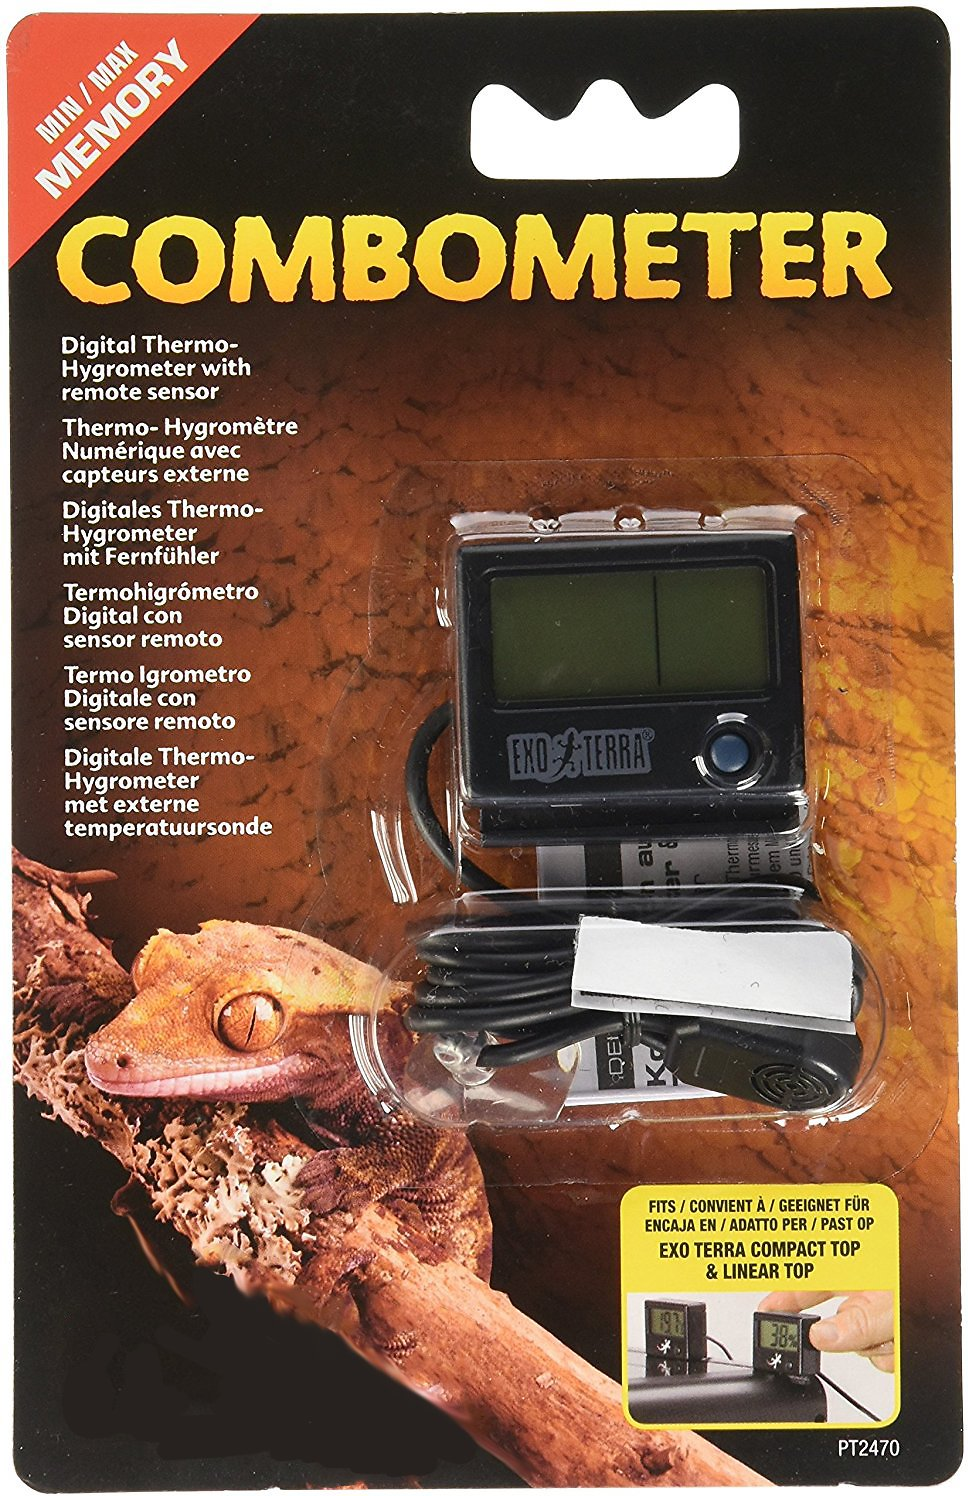 EXOTERRA Combometer (Digital Thermometer & Hygrometer)